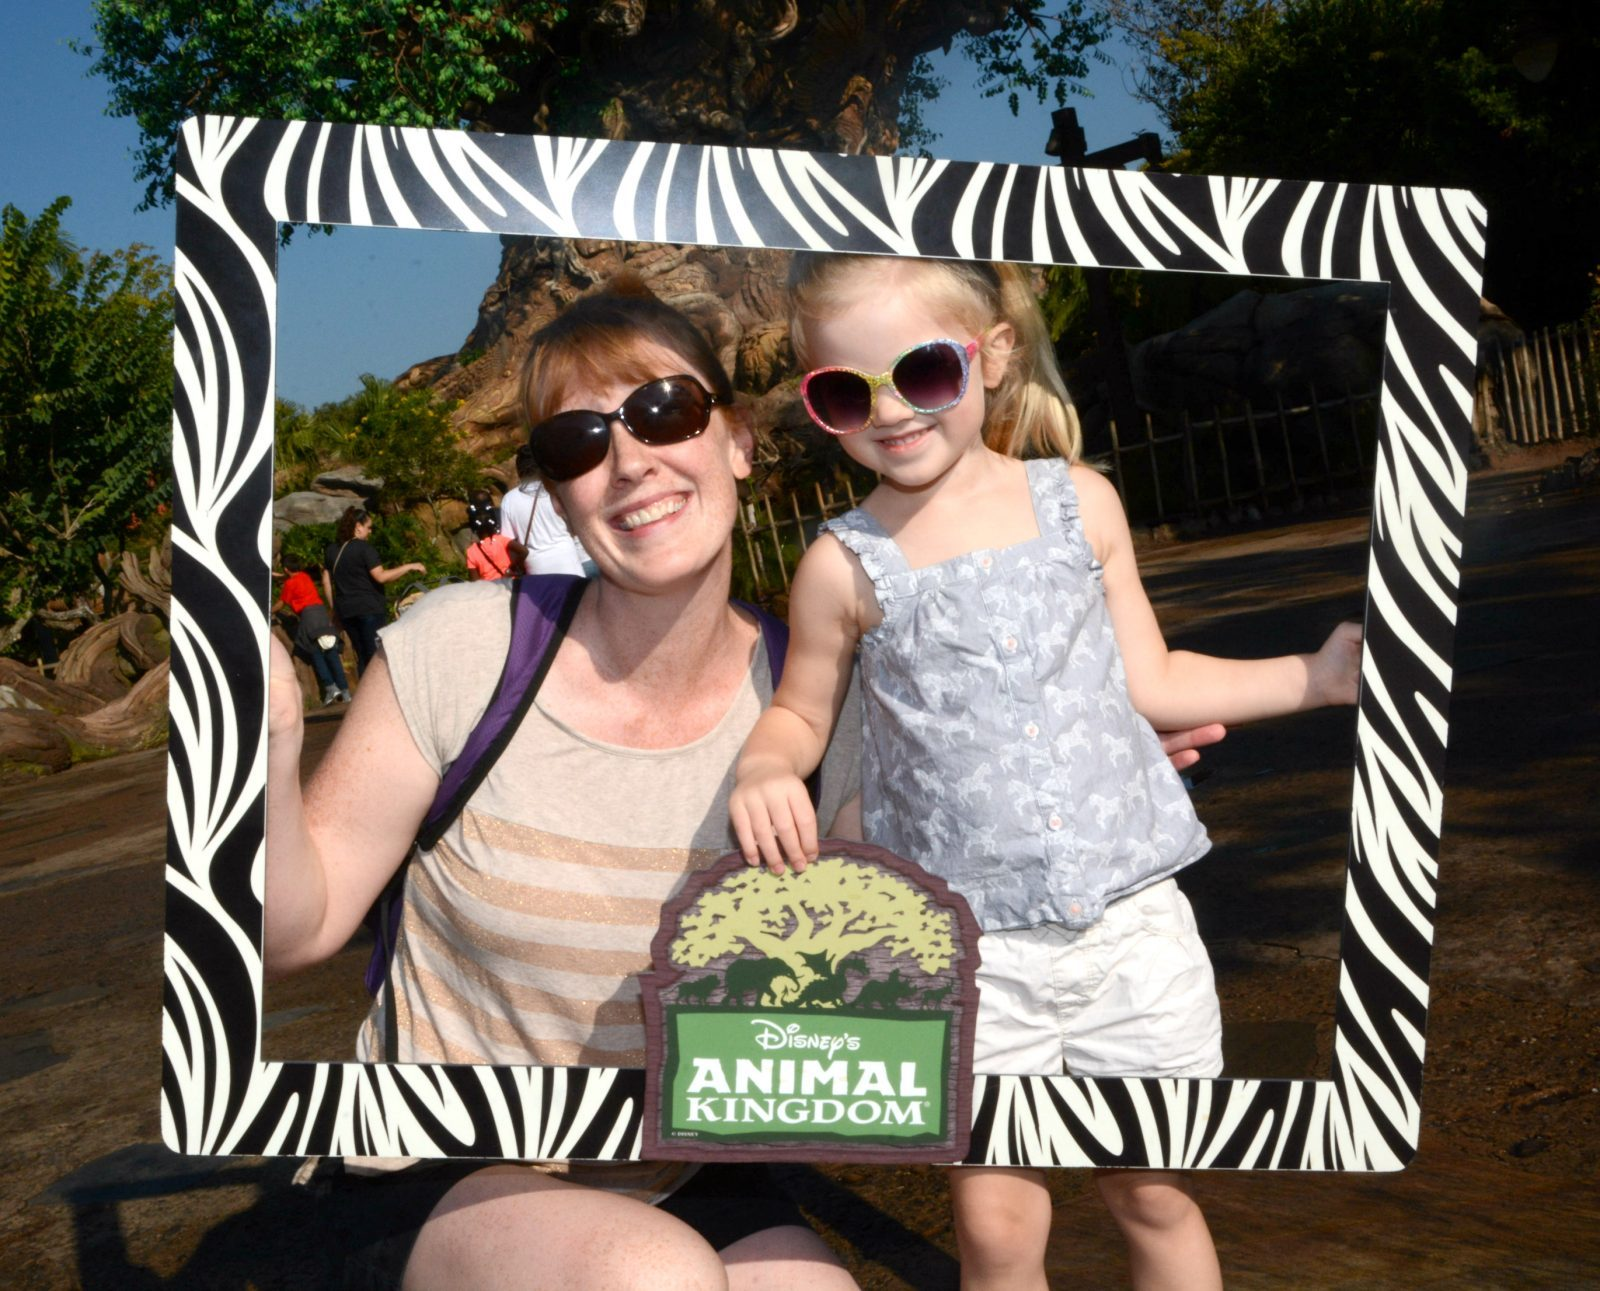 mommy daughter zebra frame photo at animal kingdom